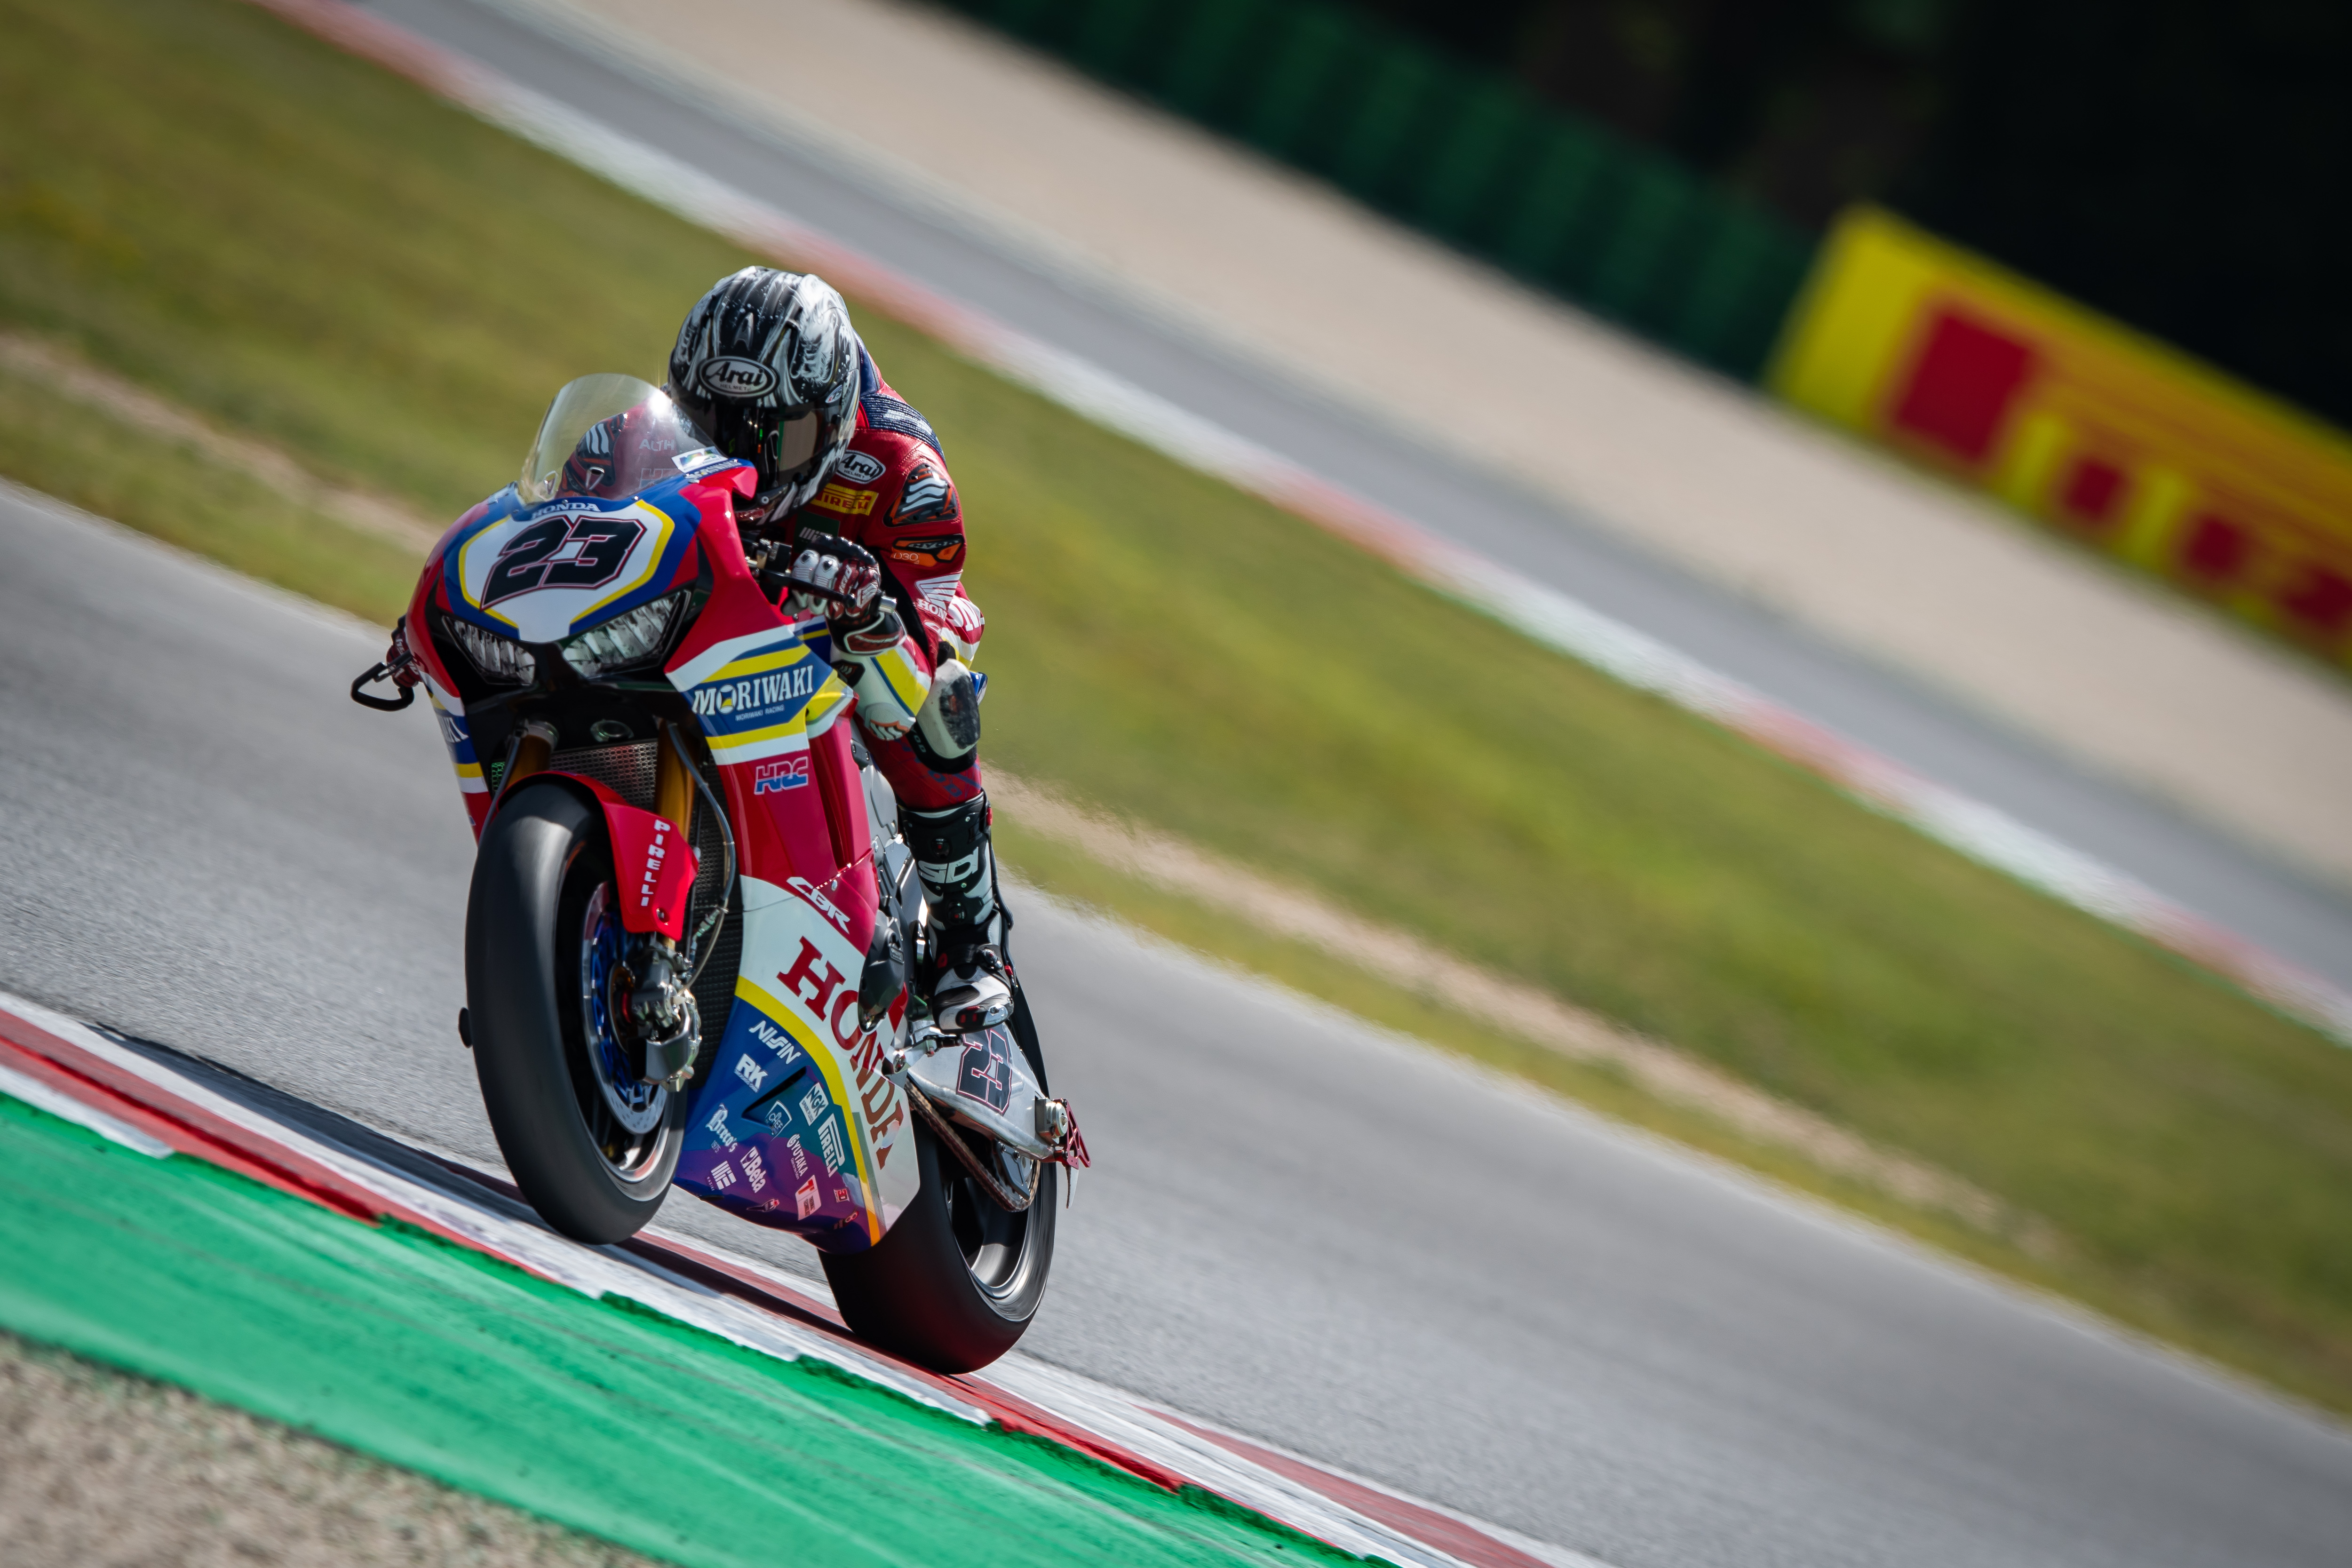 Moriwaki_Althea_Honda_Team_Misano_115